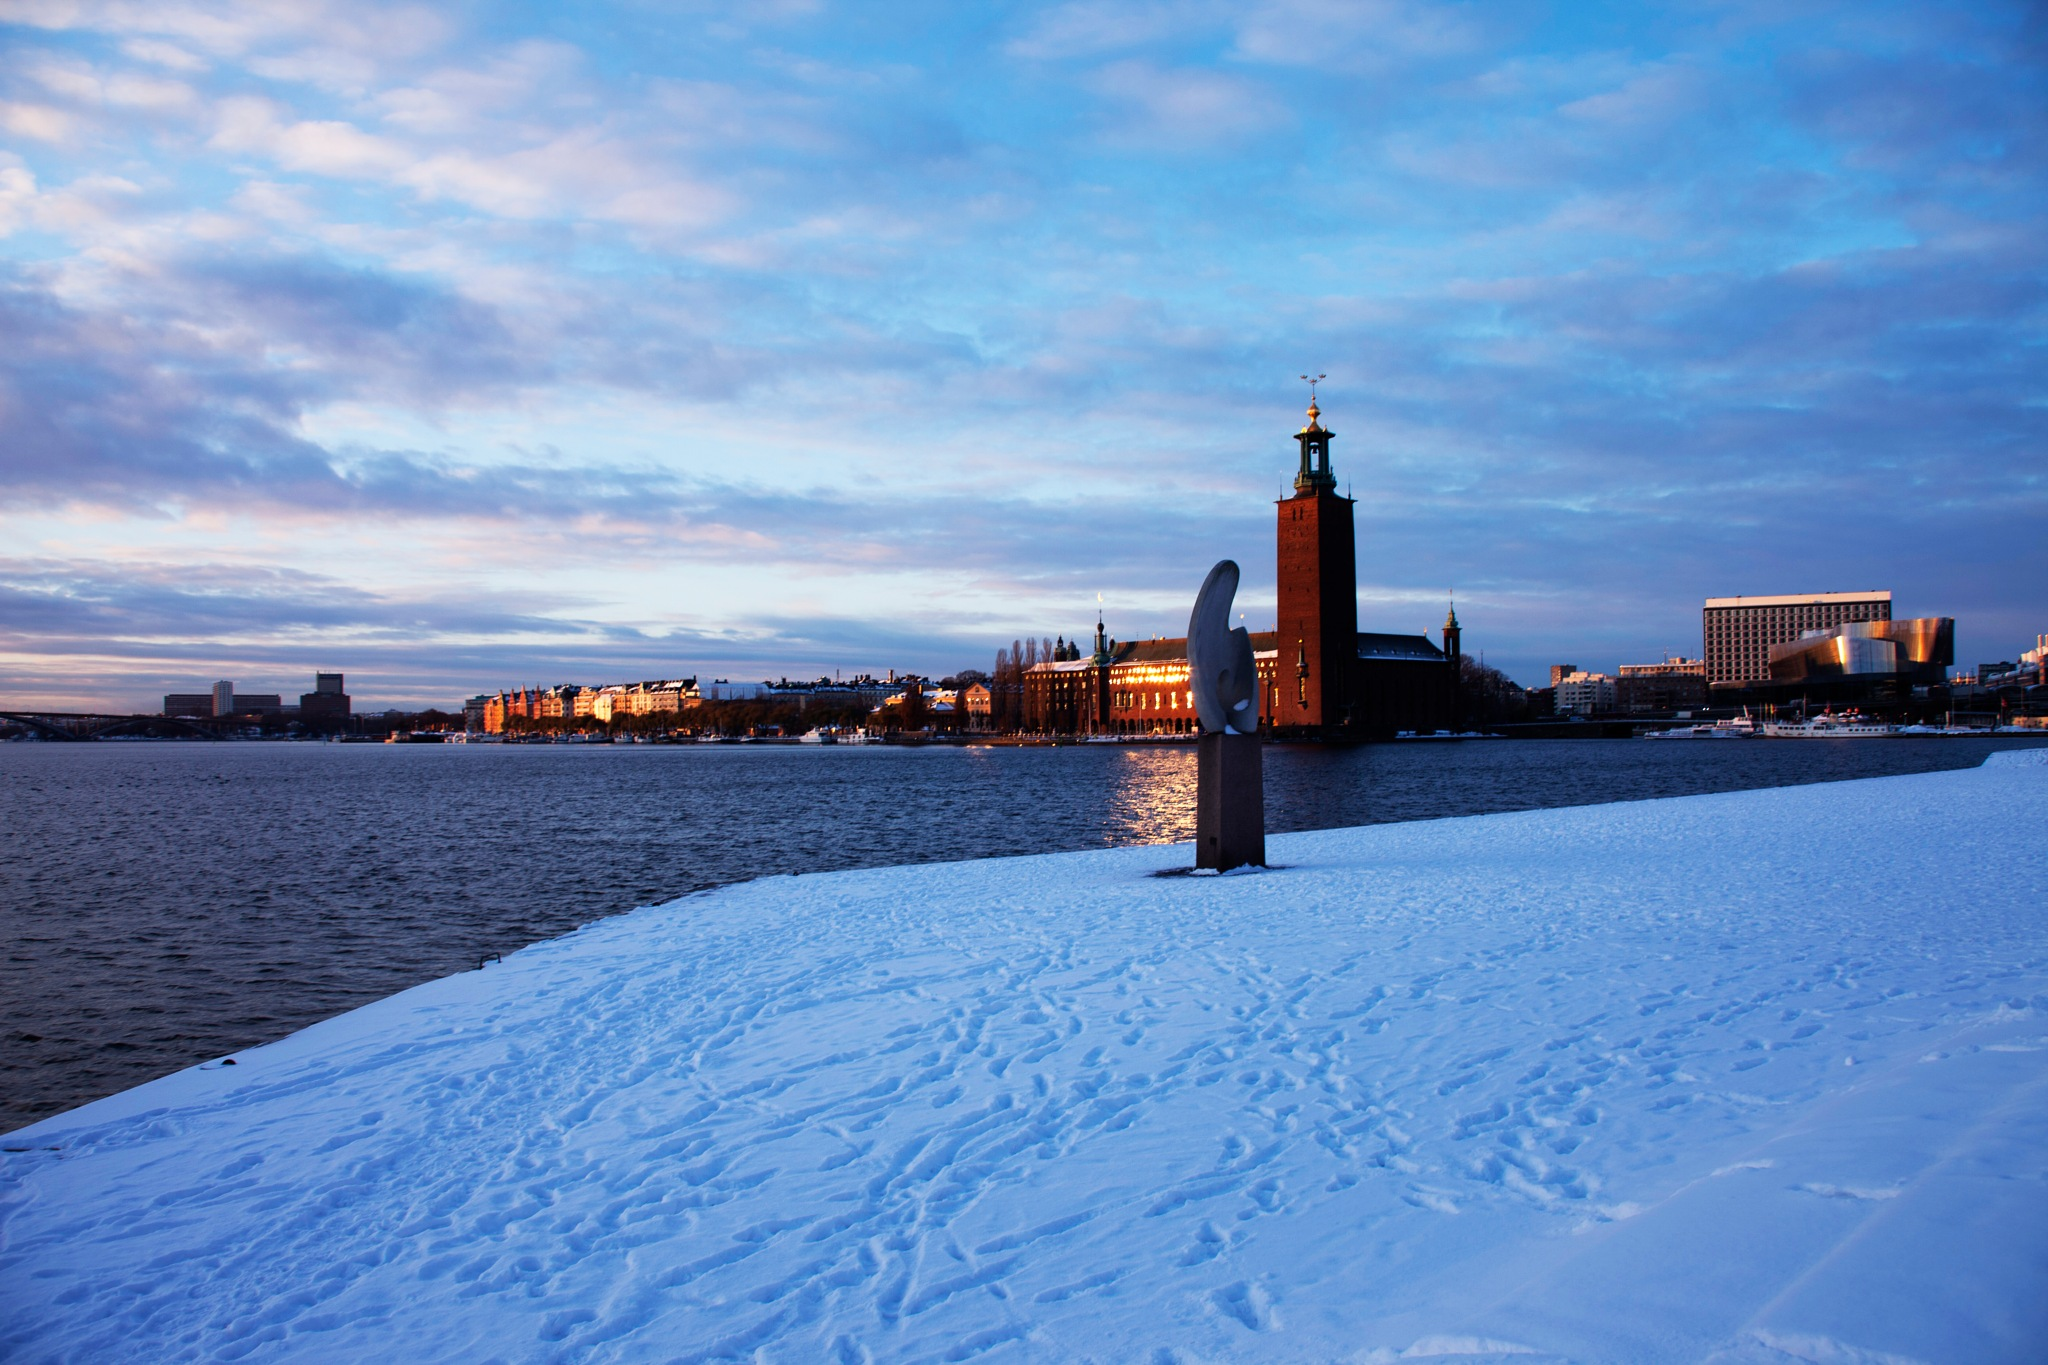 STockholm in the winter by Grace Olsson